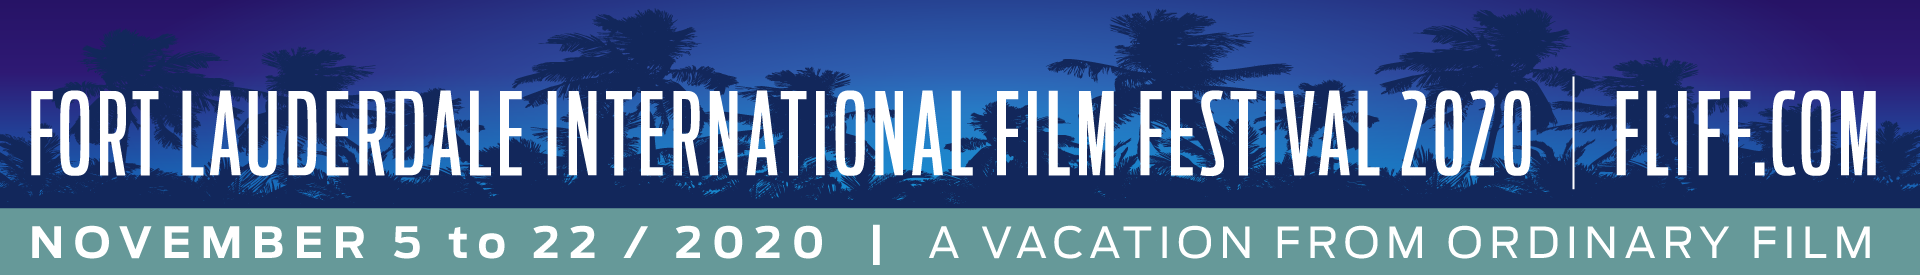 35th ANNUAL FORT LAUDERDALE INTERNATIONAL FILM FESTIVAL